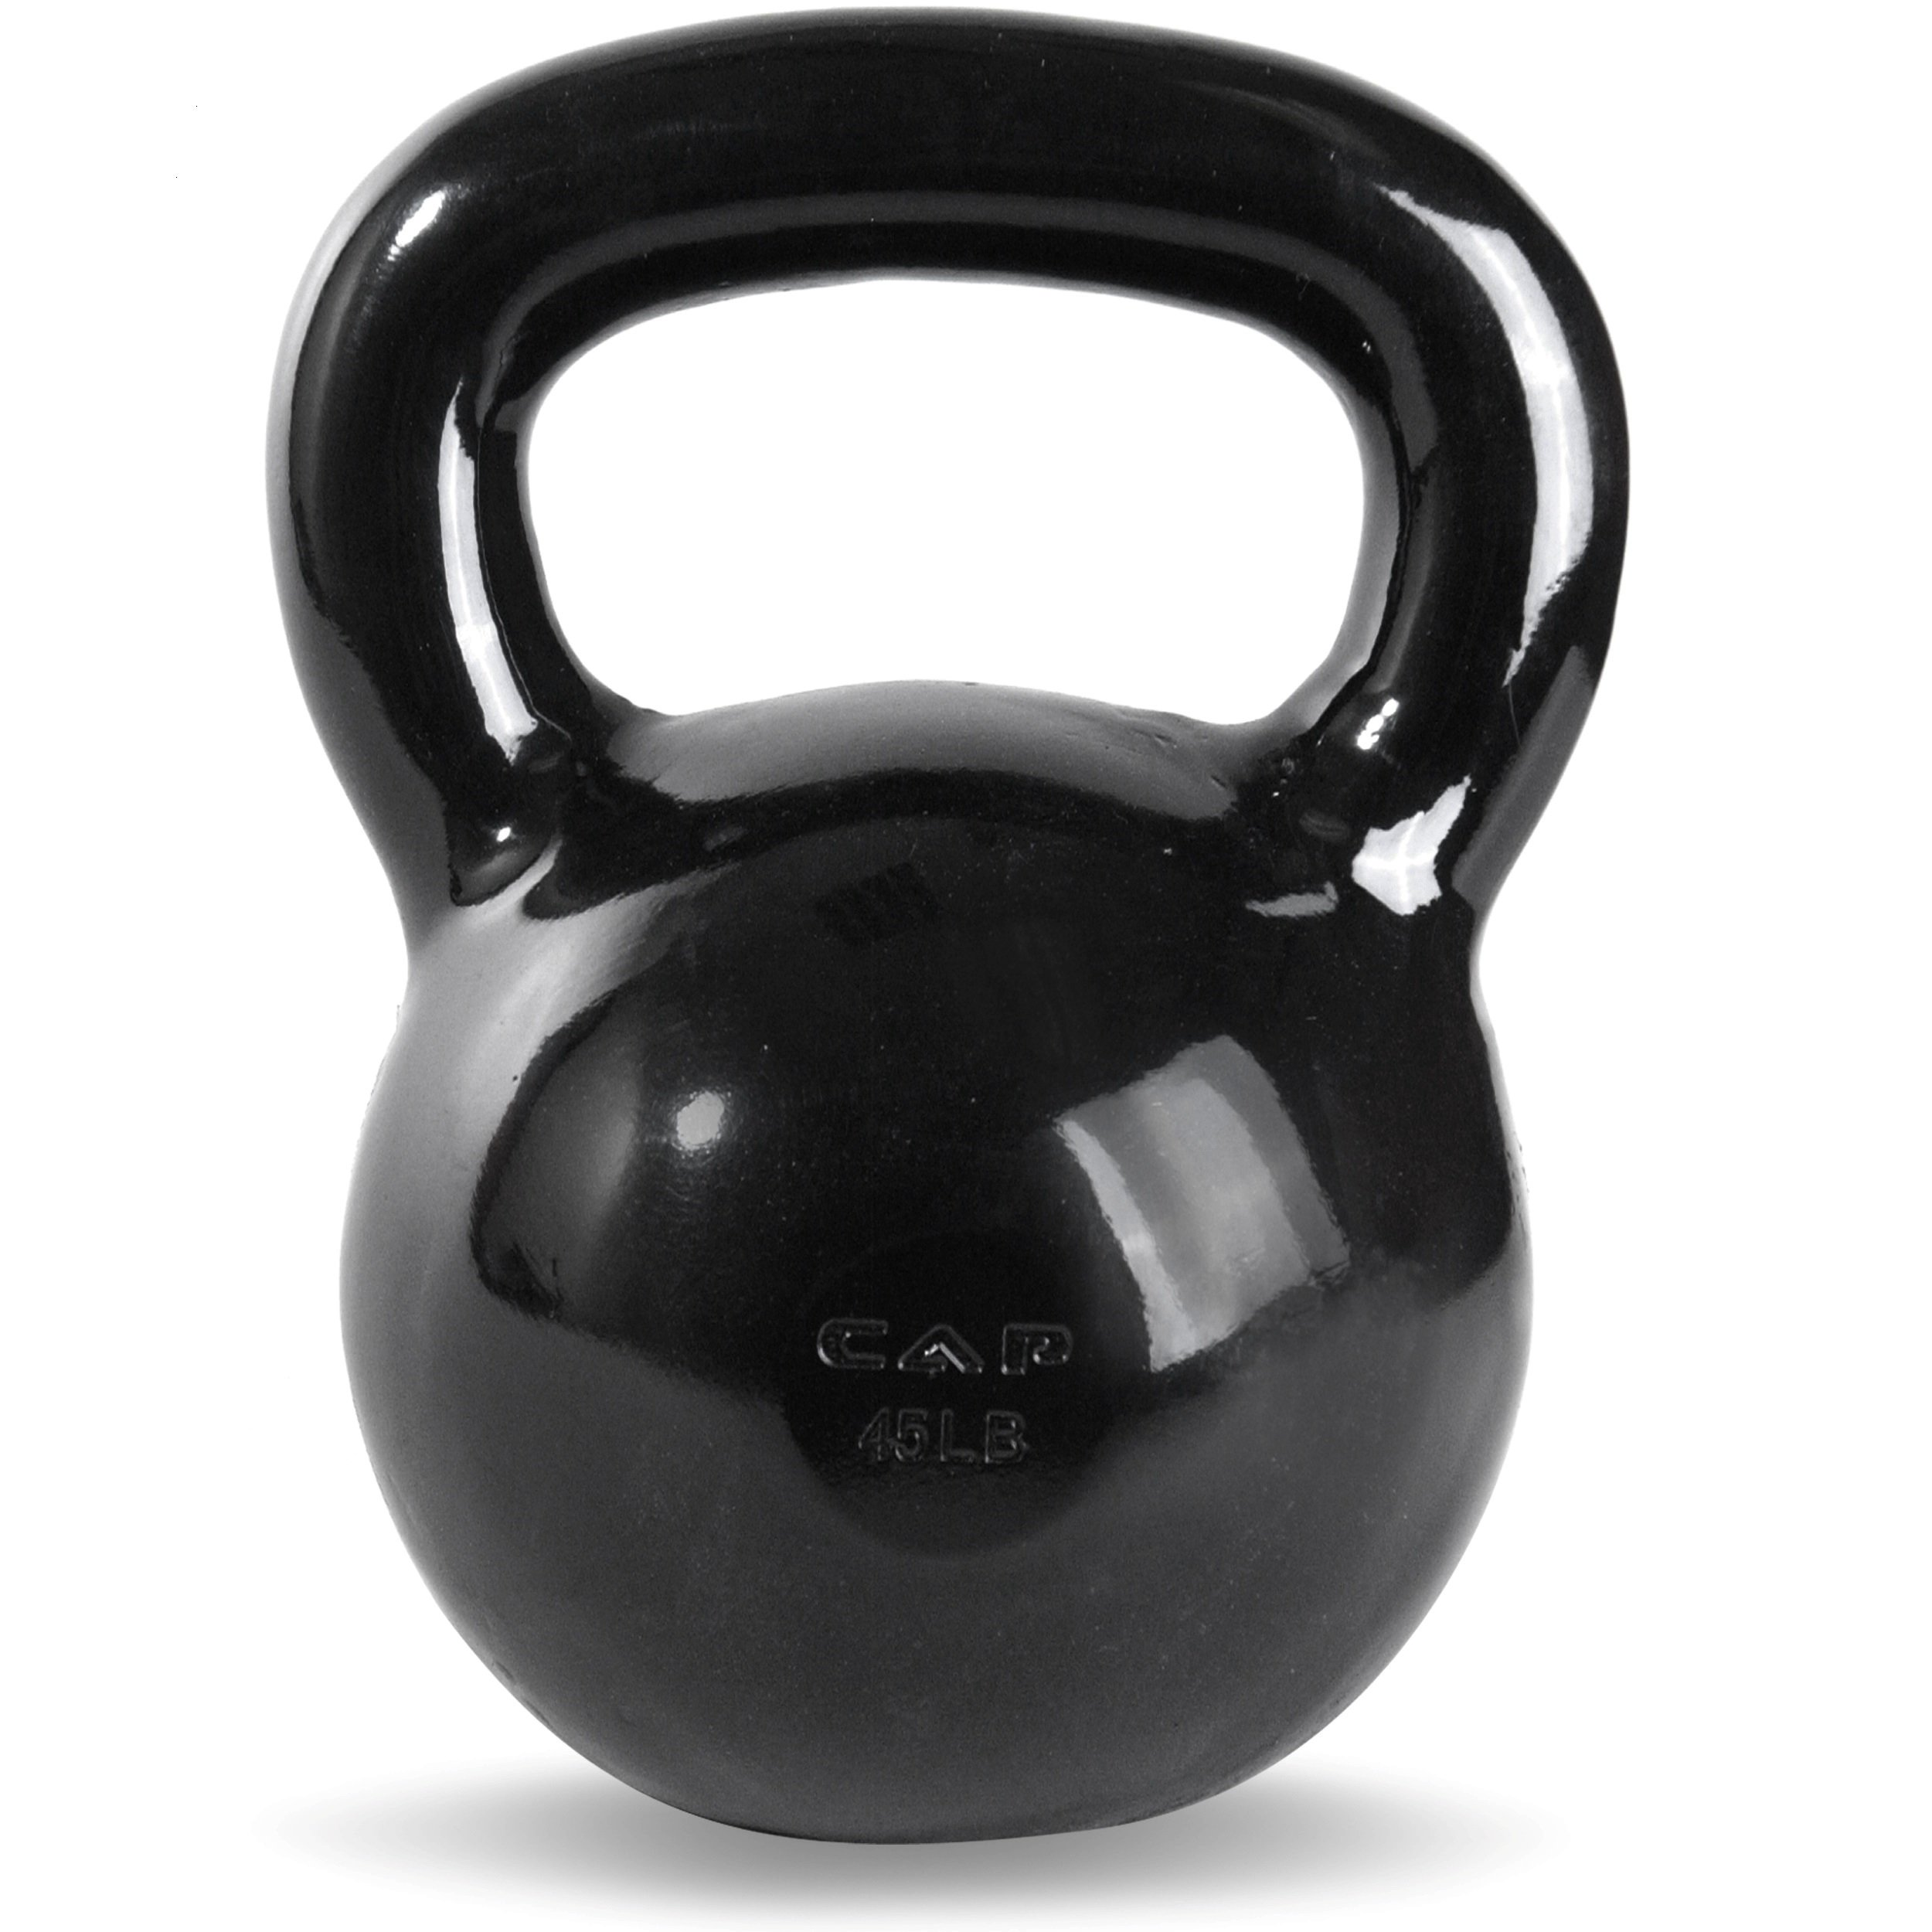 CAP Barbell Black Powder Coated Cast Iron Kettlebell, 45-Pound